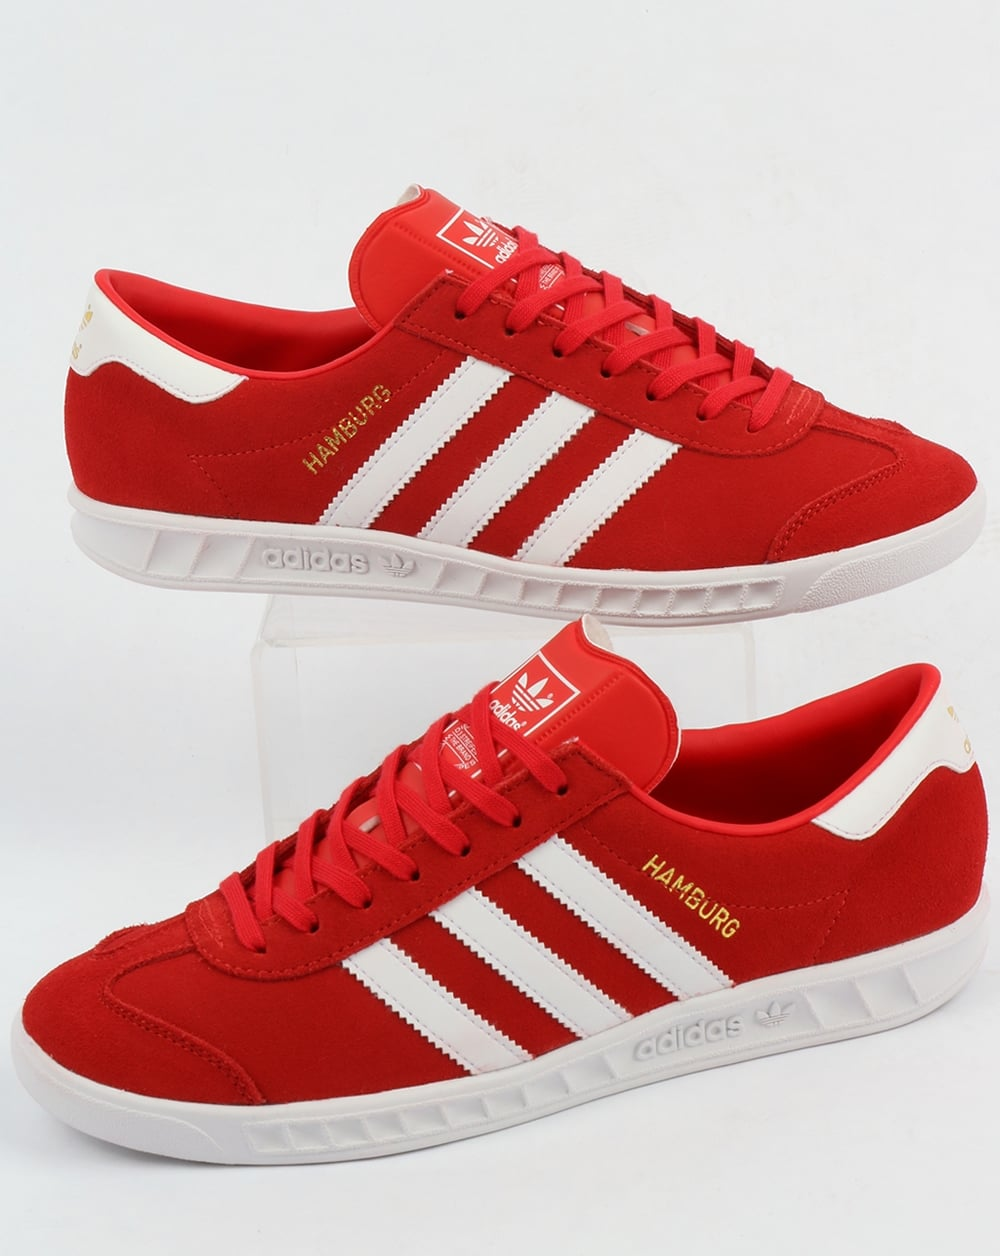 4195739dfbeb adidas Trainers Adidas Hamburg Trainers Red White